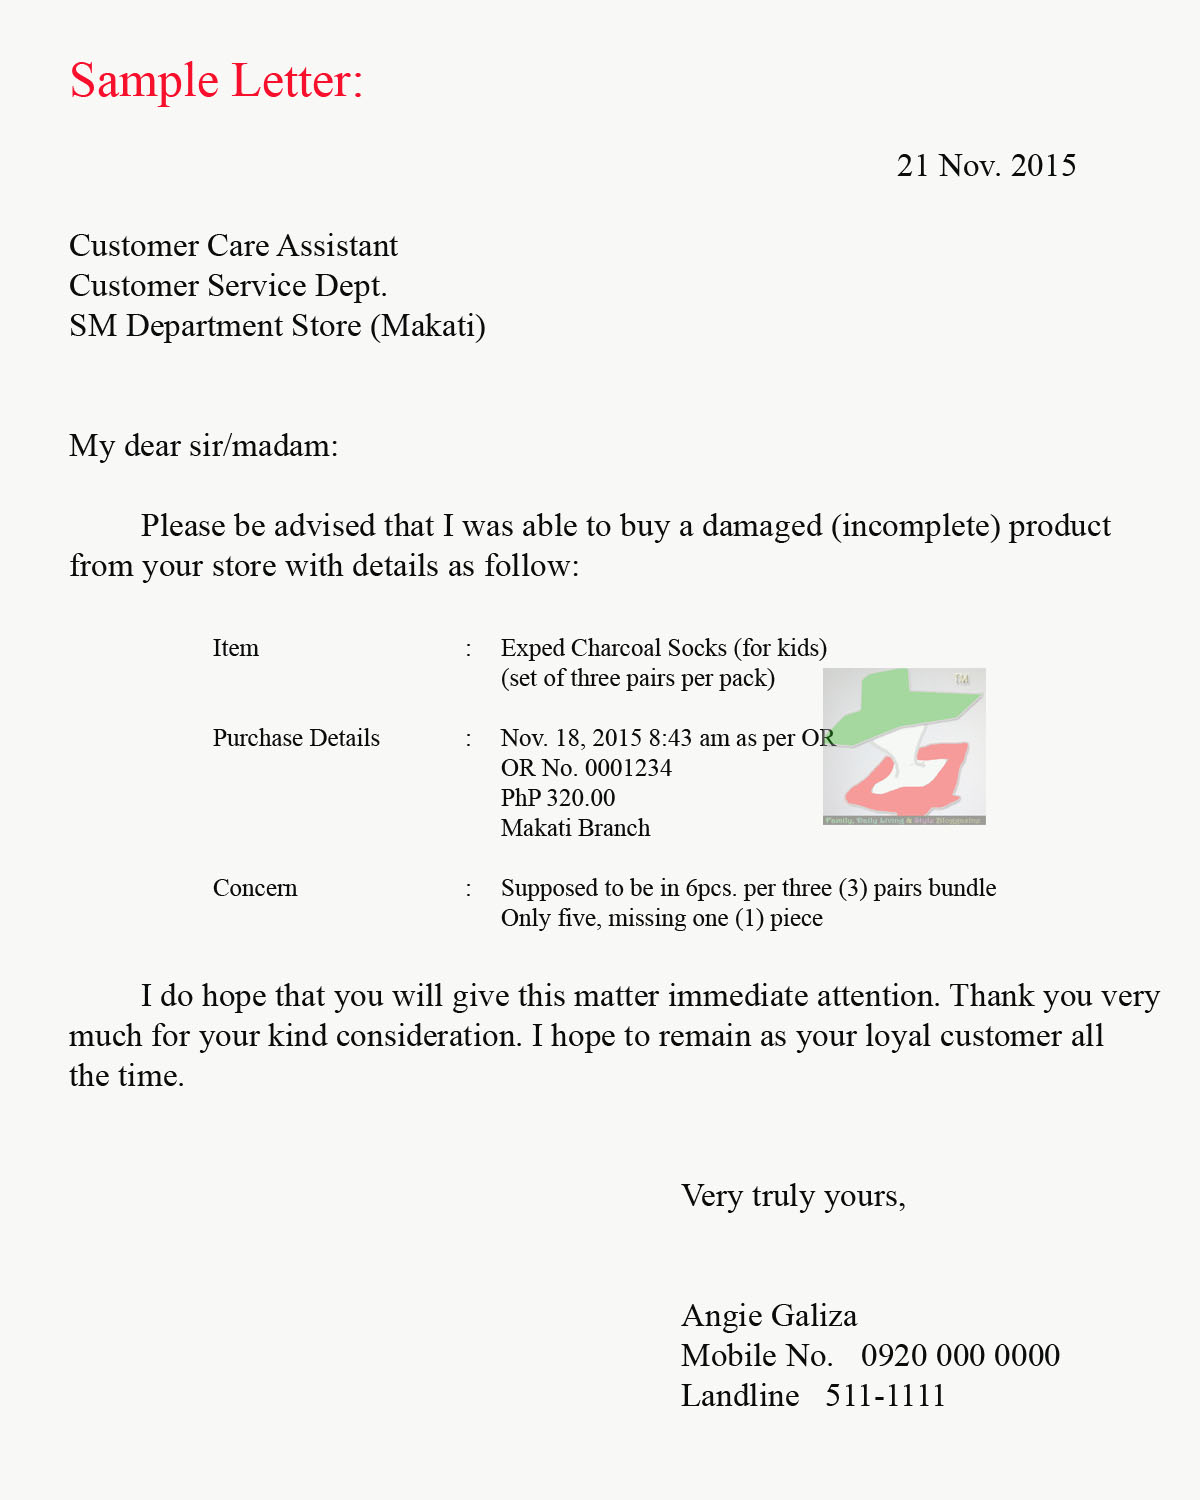 How to write a customer complaint letter complaint letter consumer sample complaint letter bank manager 93kb sample complaint letter complaint letter sample employee for letter of customer spiritdancerdesigns